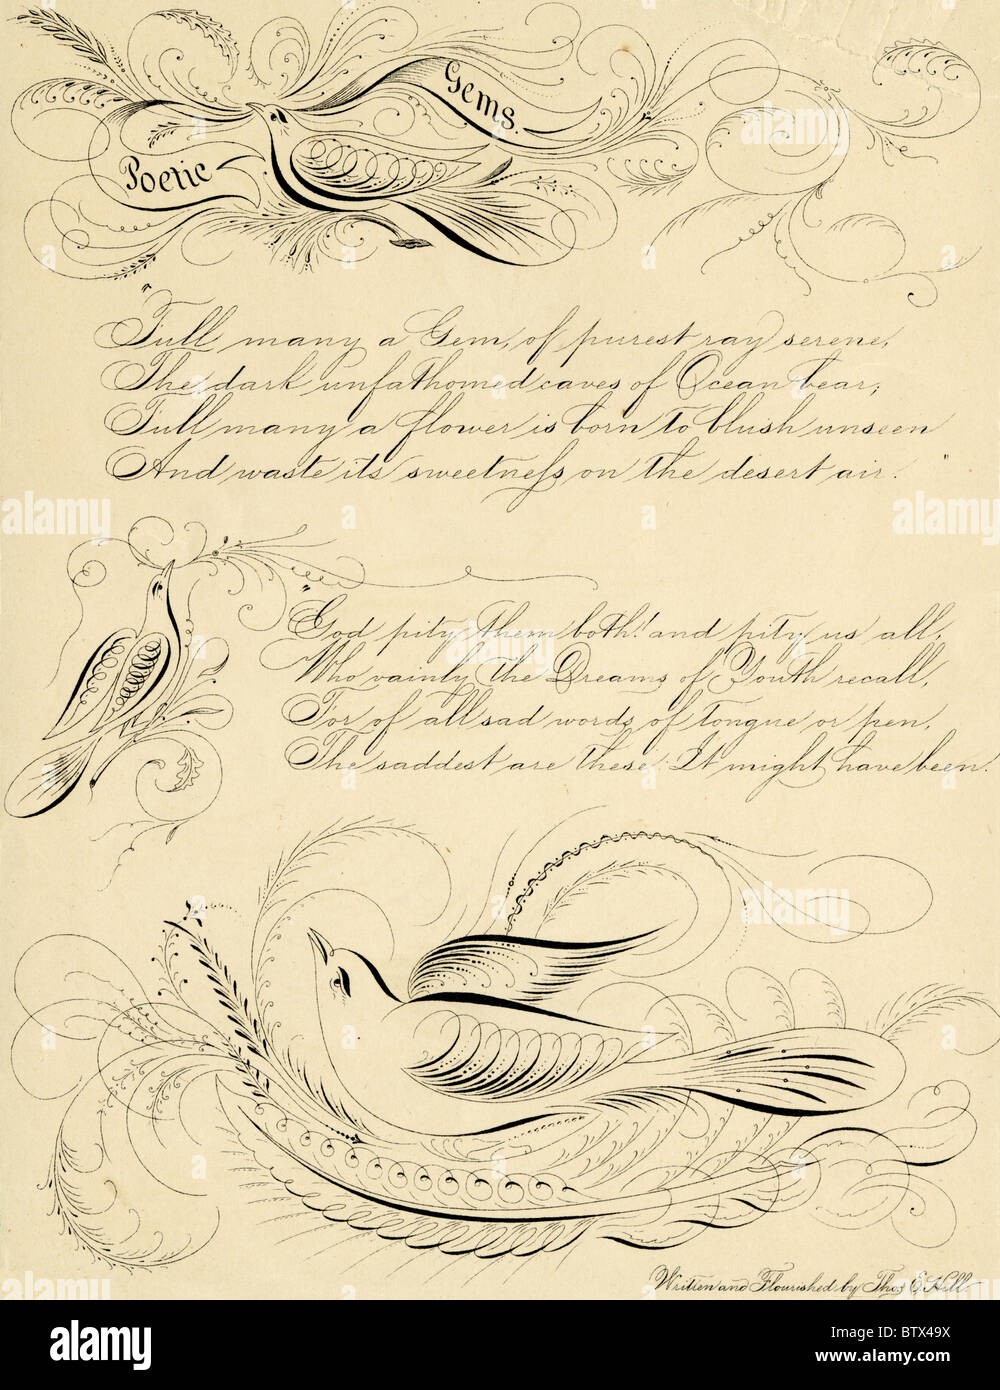 Circa 1840s calligraphic flourish of poetry and birds, by Thomas E. Hill. - Stock Image